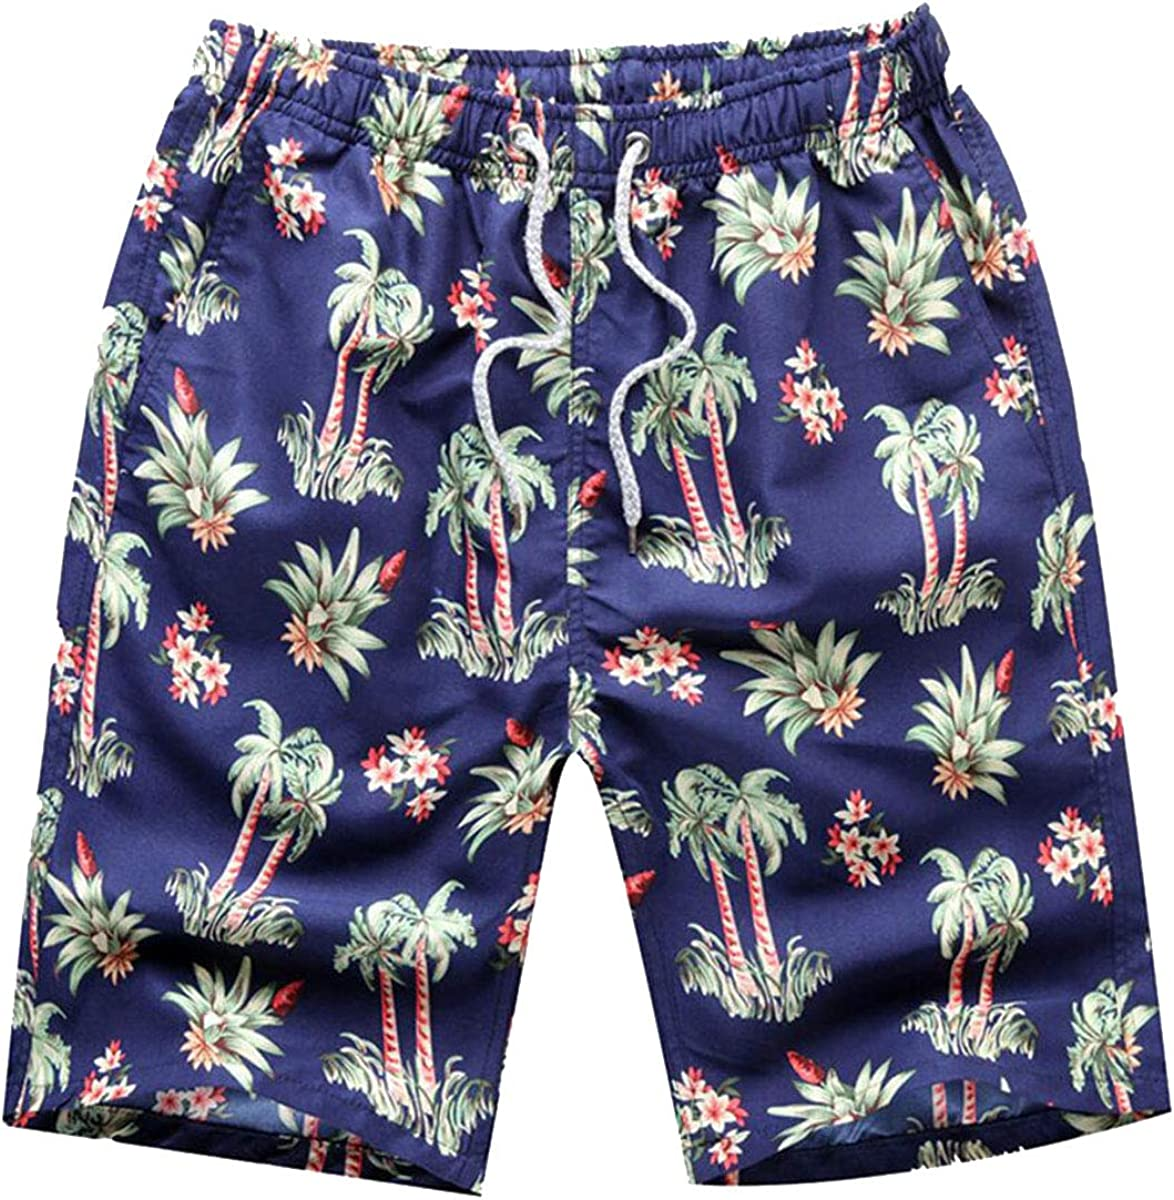 Men's Swim Trunks Beach Board -Green with Ranking TOP12 Fashionable Shorts Lining Coconut